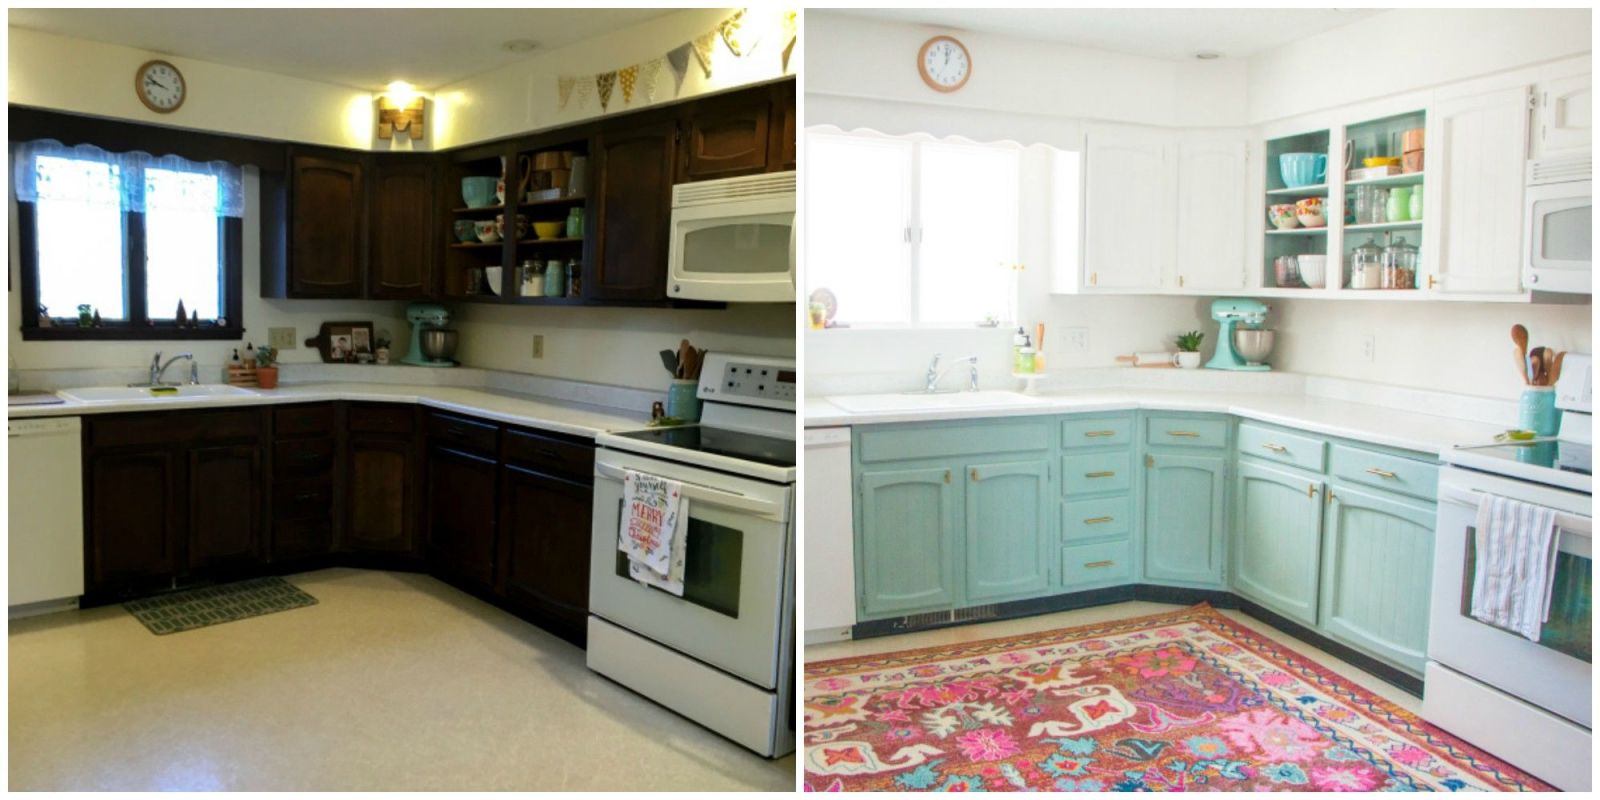 This Bright And Cheery Kitchen Renovation Cost Just 250 Cheap Kitchen Ideas